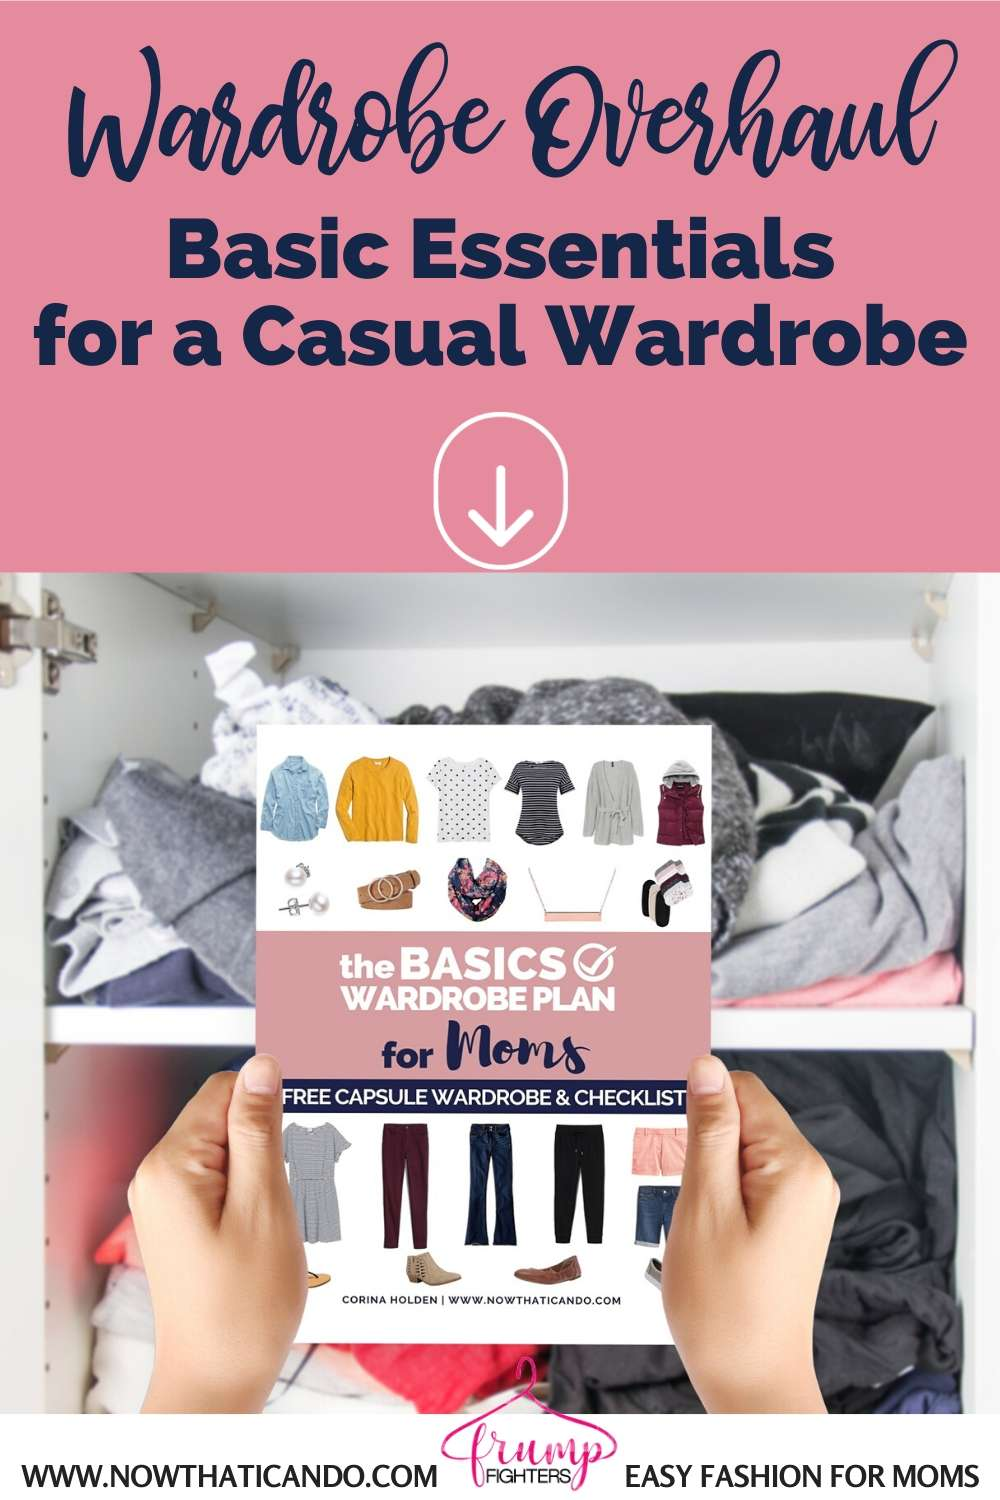 Wardrobe overhaul essentials new wardrobe shopping list - clothing budget for new wardrobe cost - staple clothing for stay at home moms